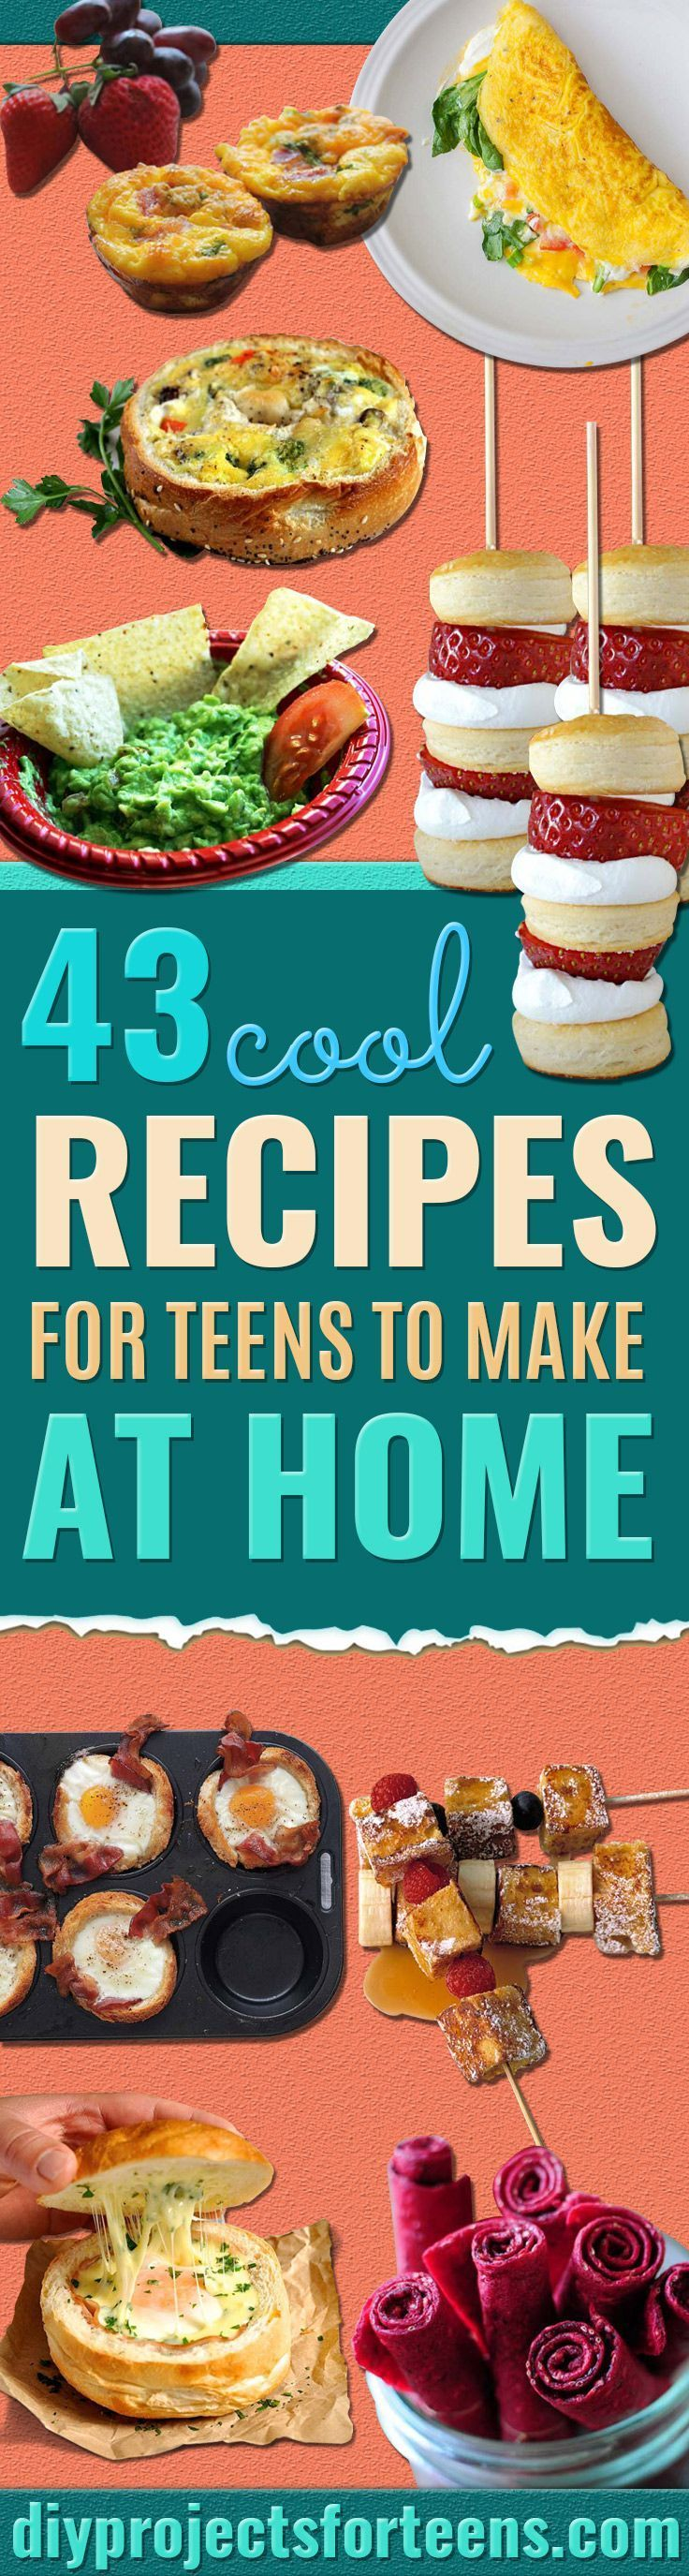 43 Cool Recipes For Teens To Make At Home Easy Healthy Recipes